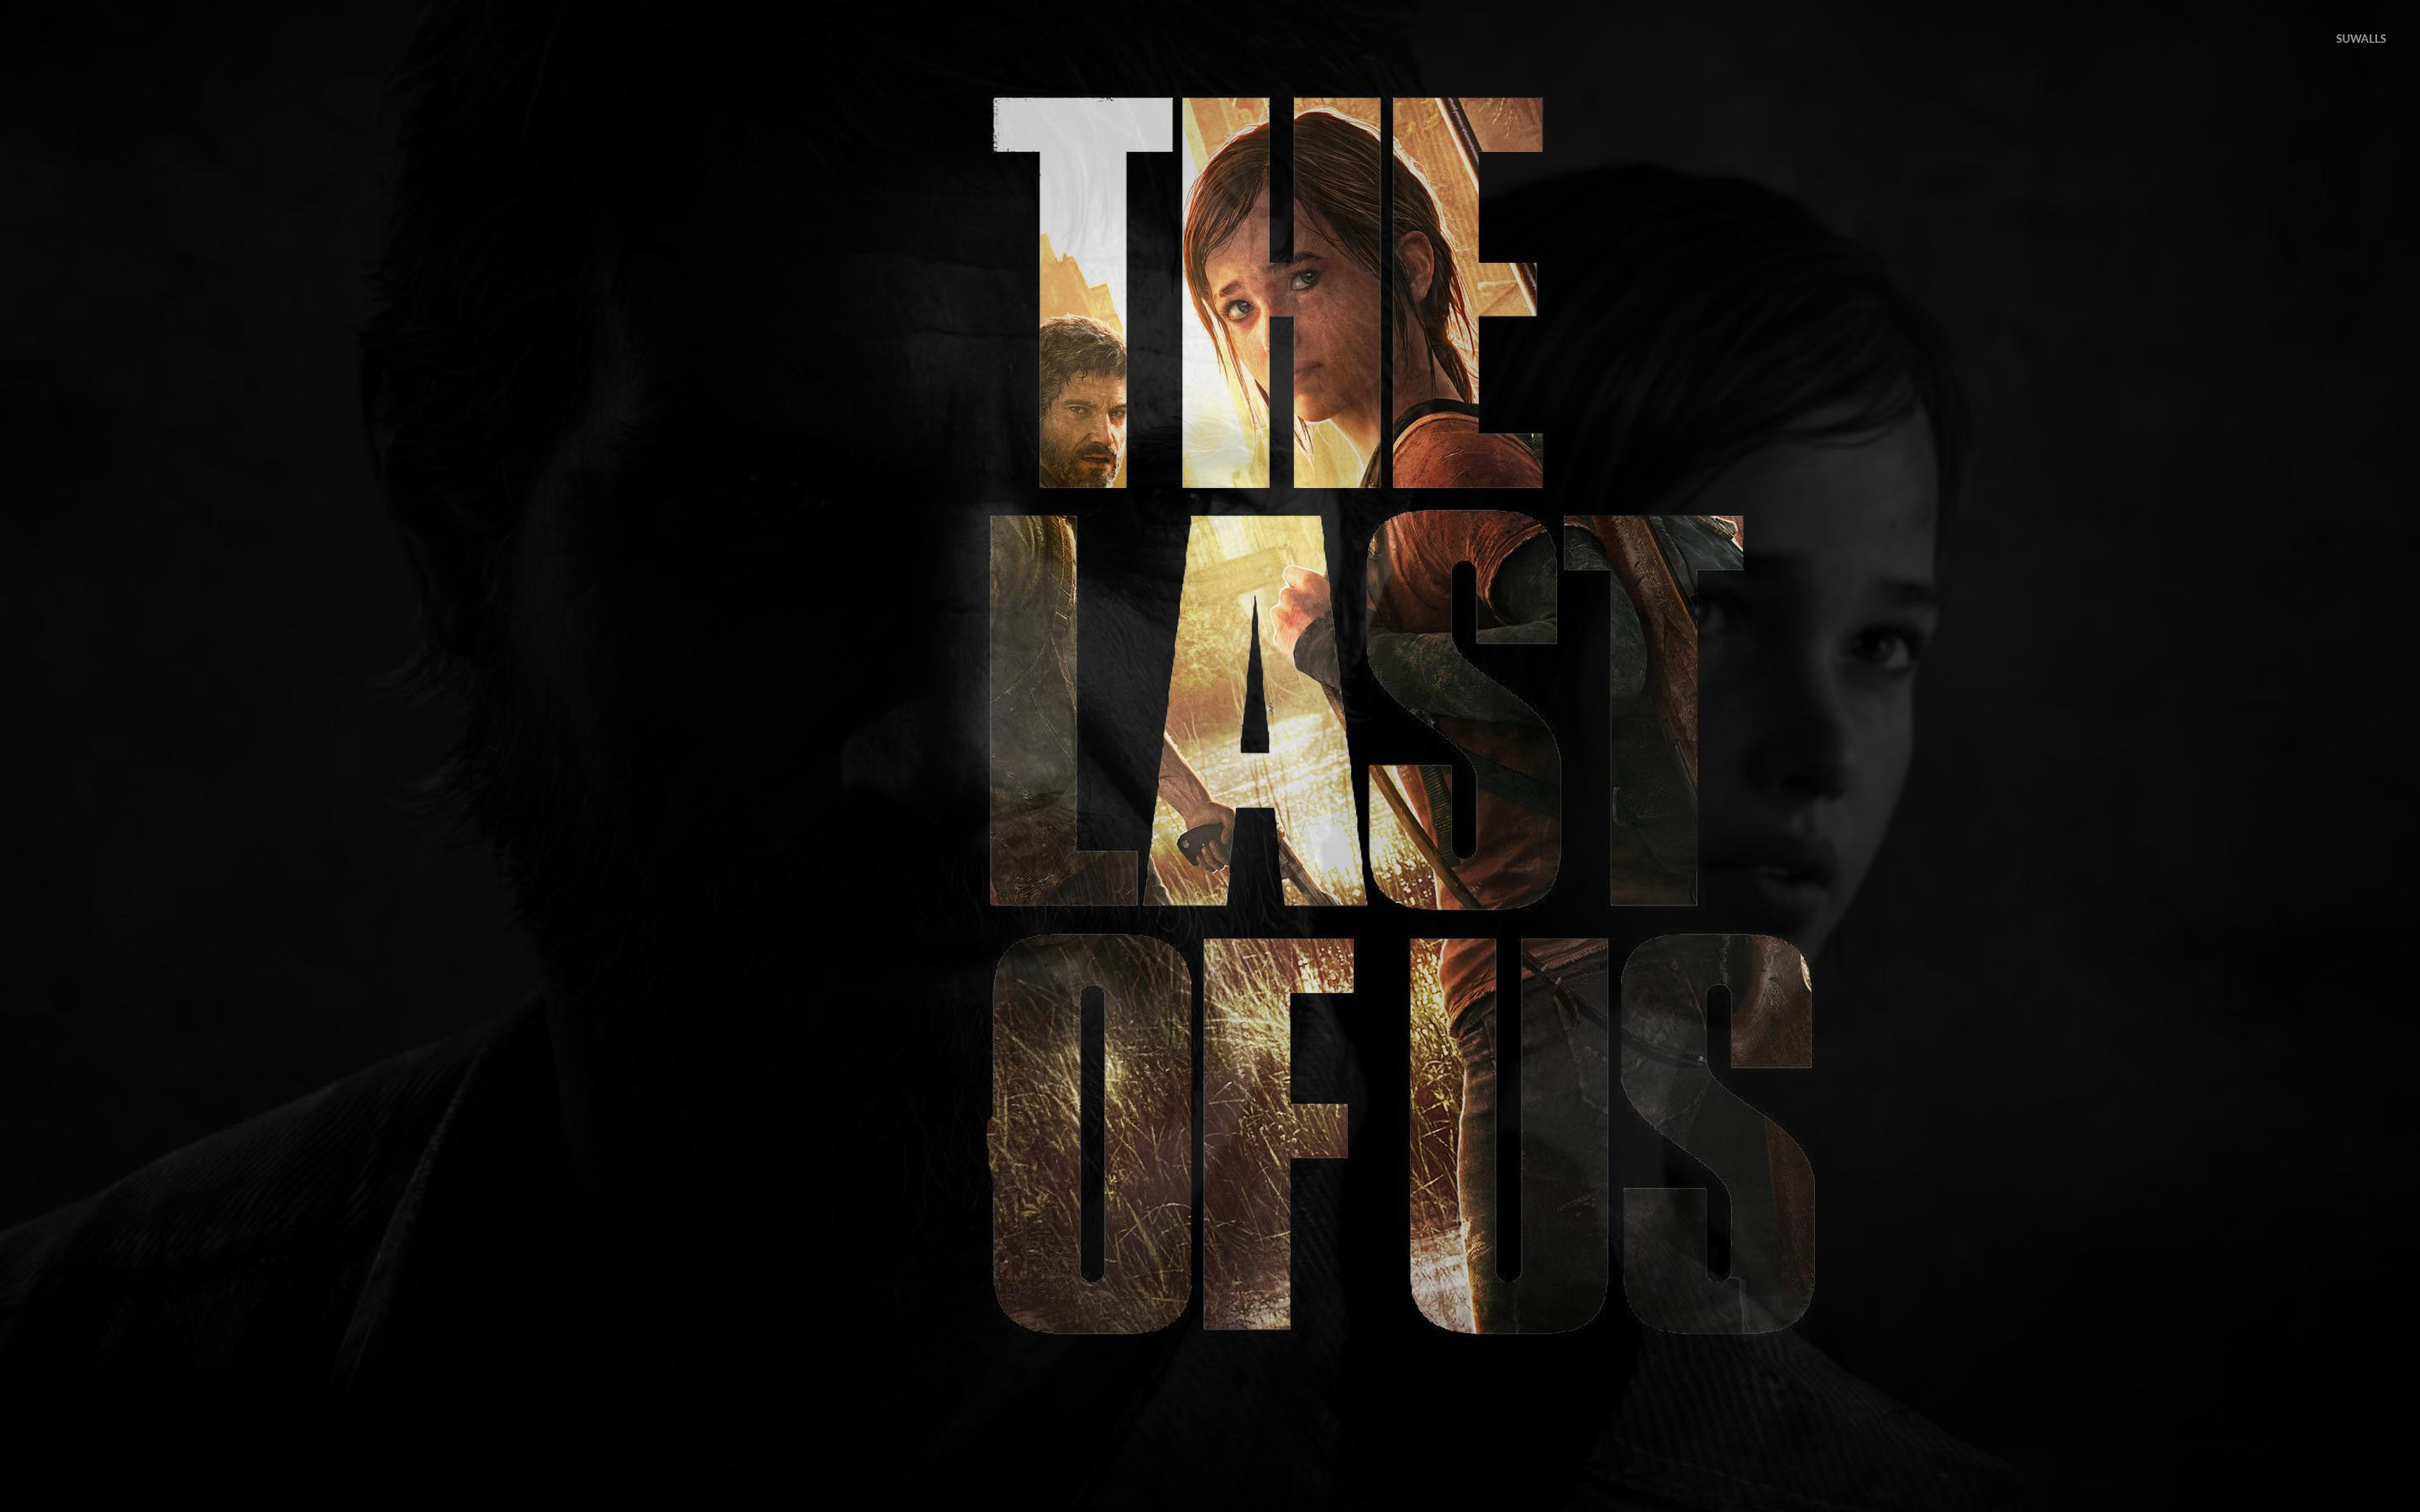 The Last Of Us Main Characters Wallpaper Game Wallpapers 48302